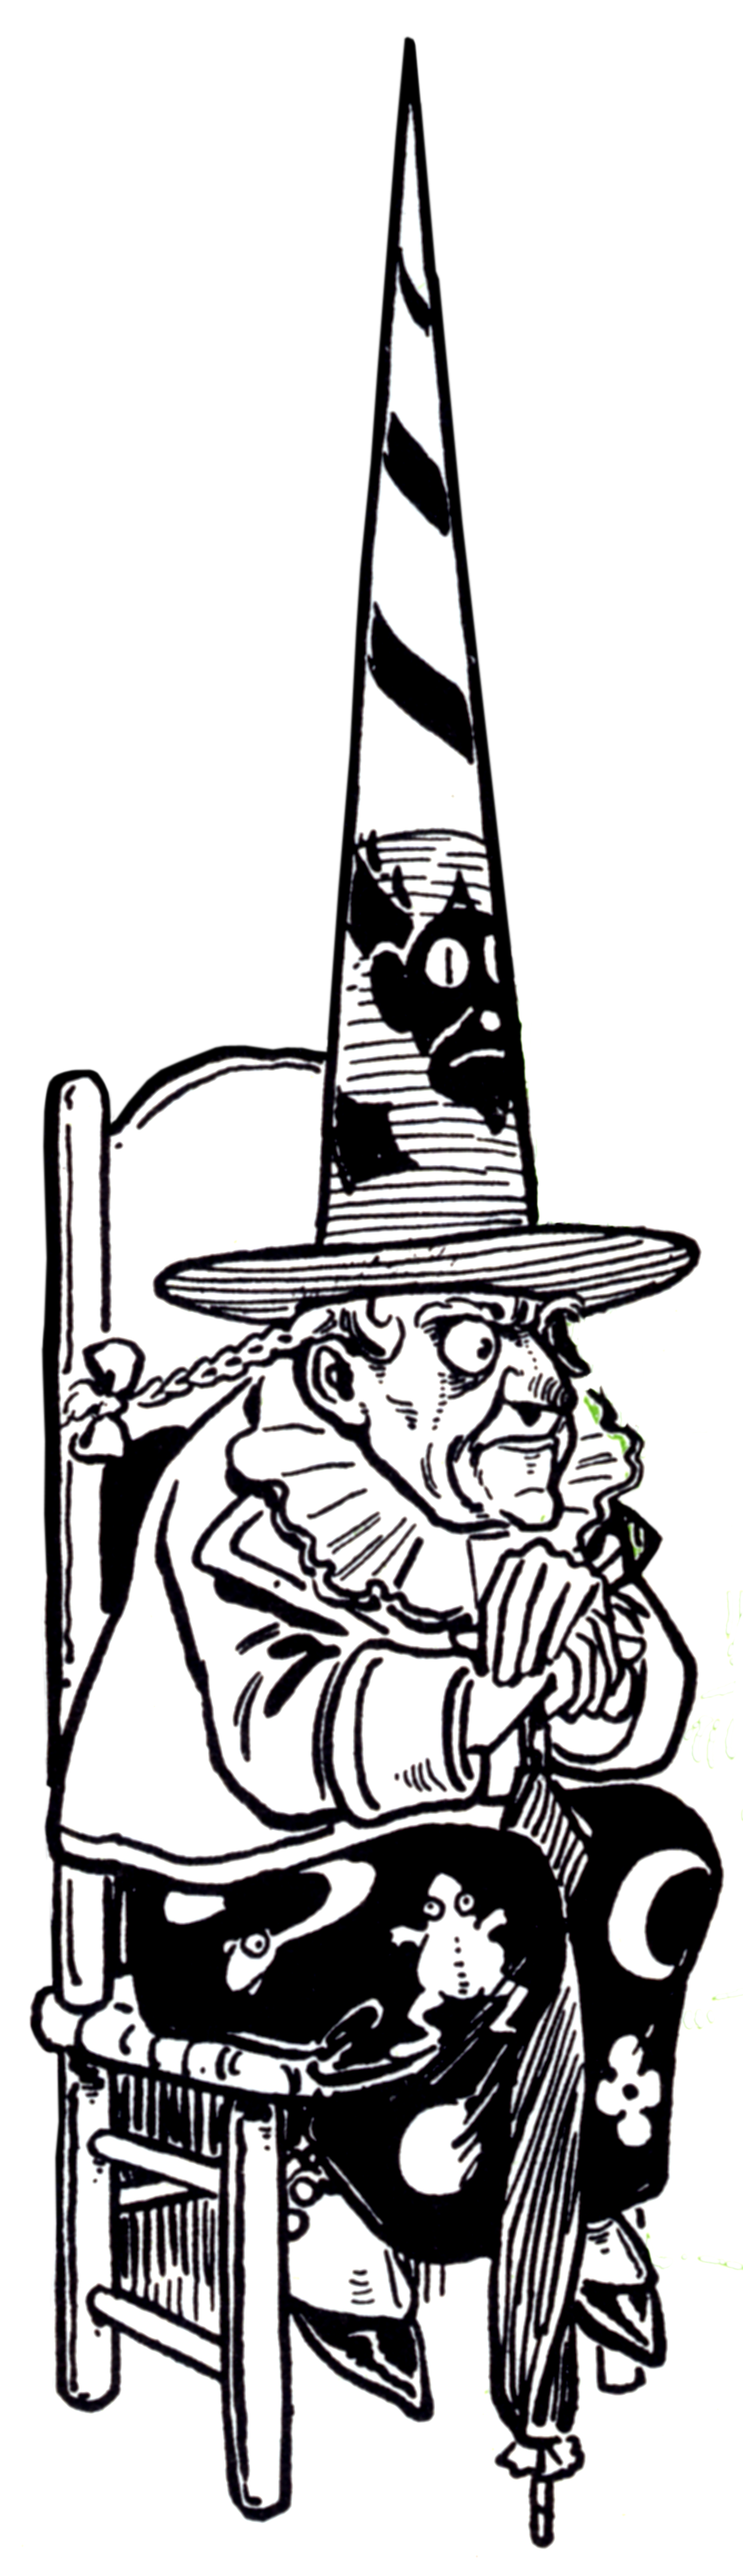 file wicked witch of the west png wikimedia commons